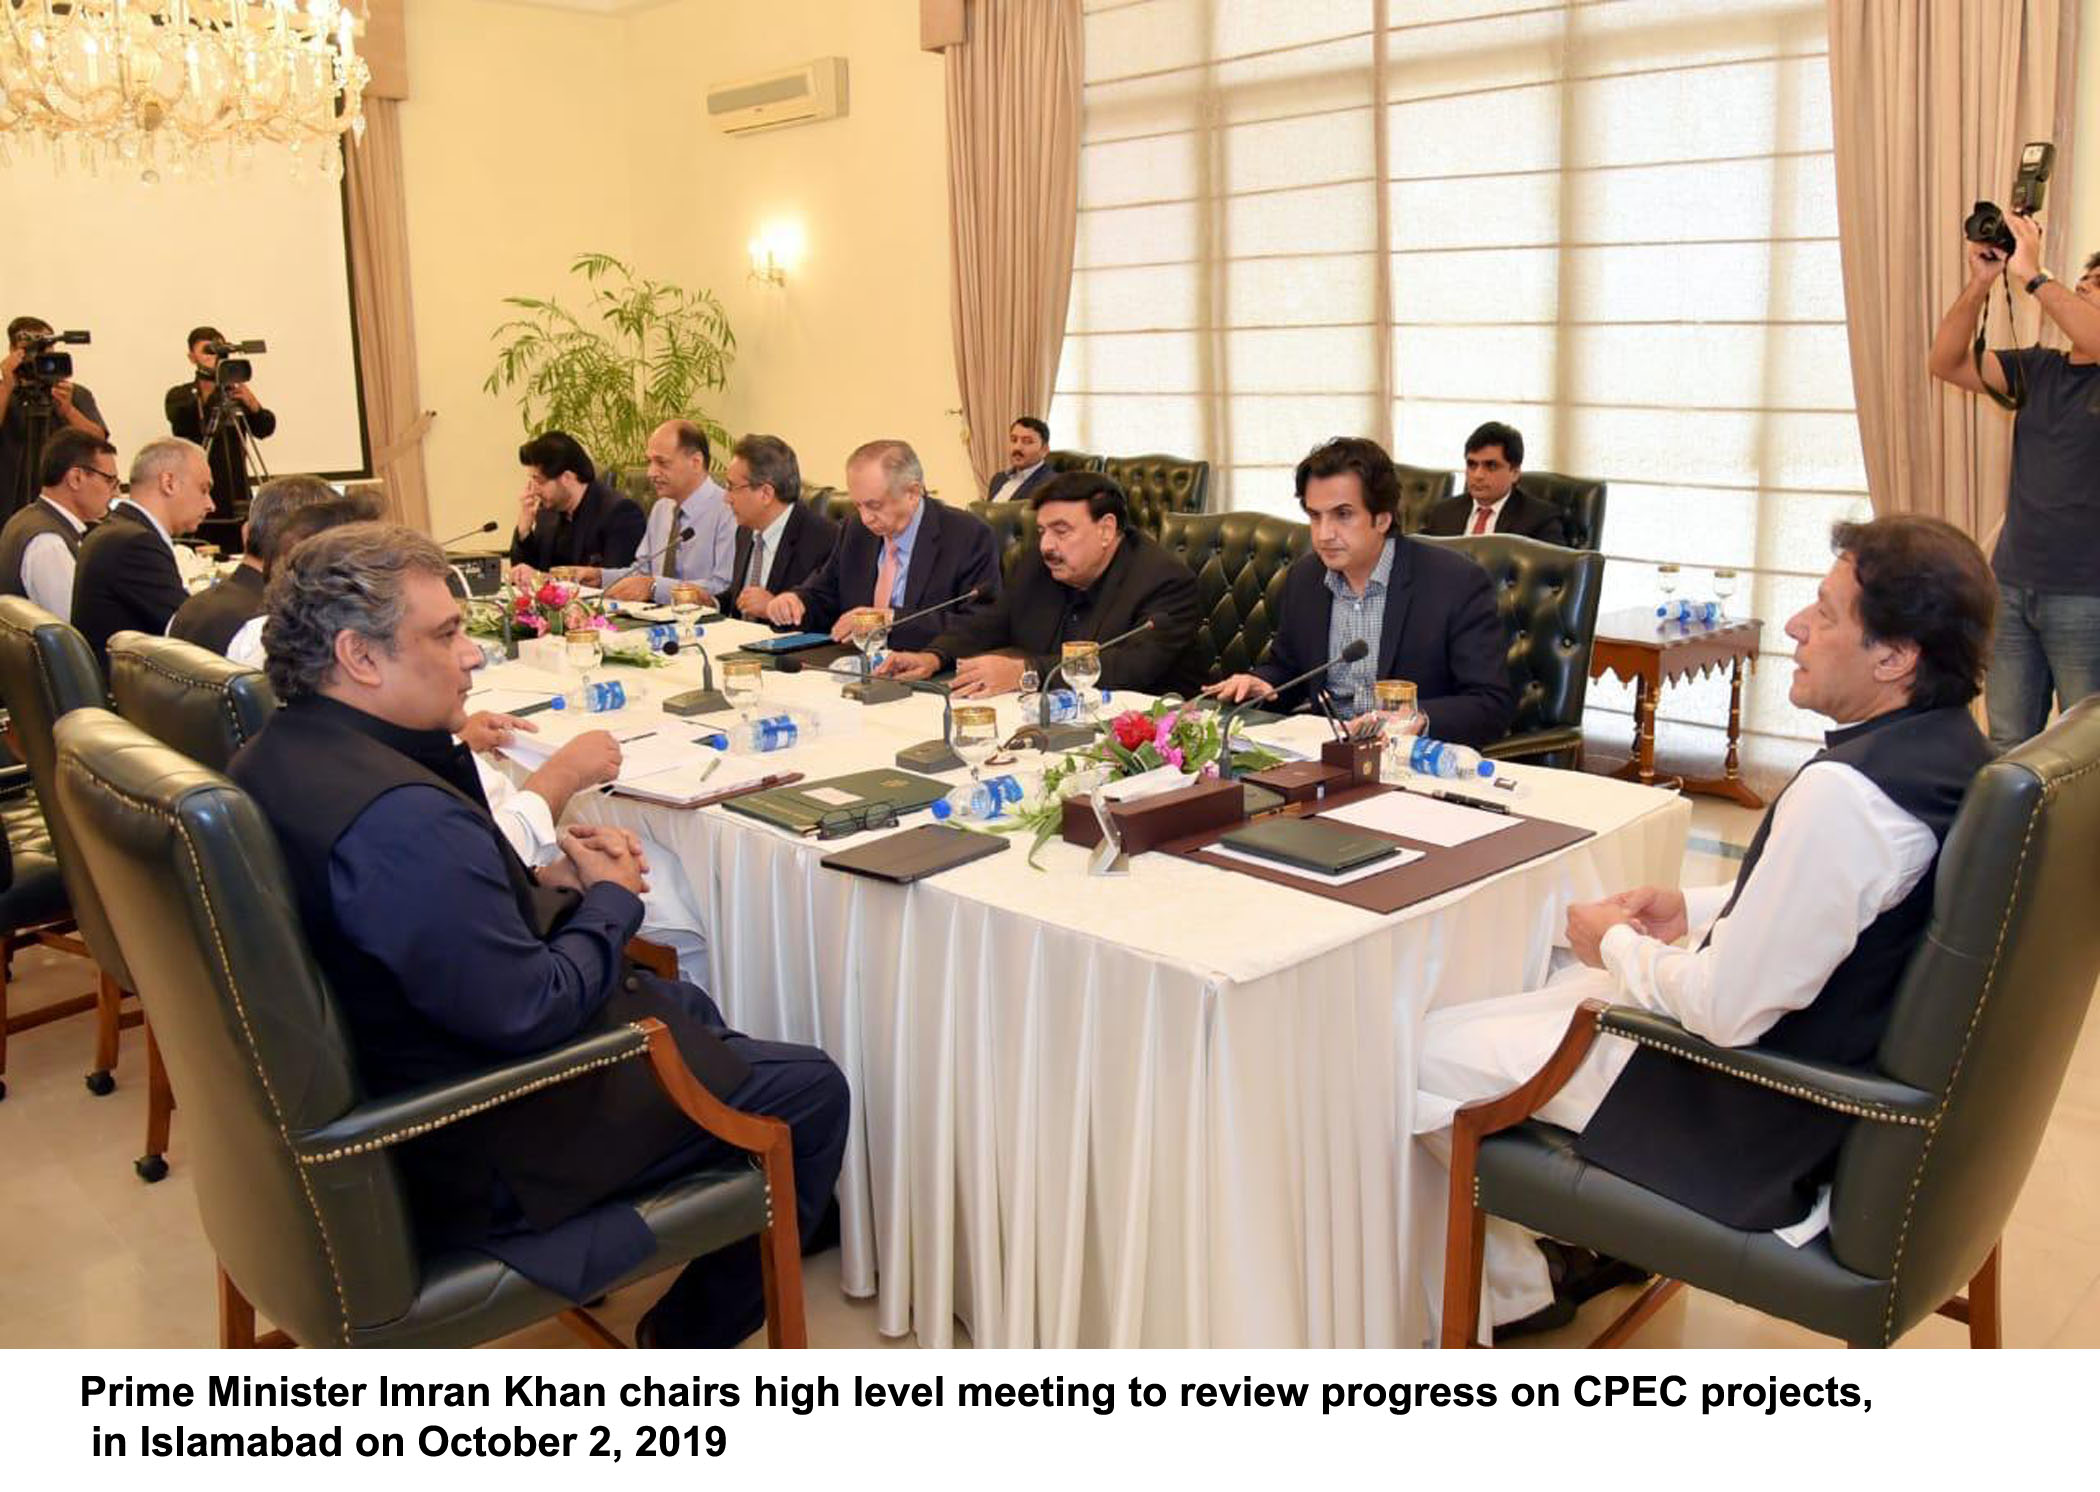 Prime Minister received Briefing on China-Pakistan Economic Corridor on October 2, 2019